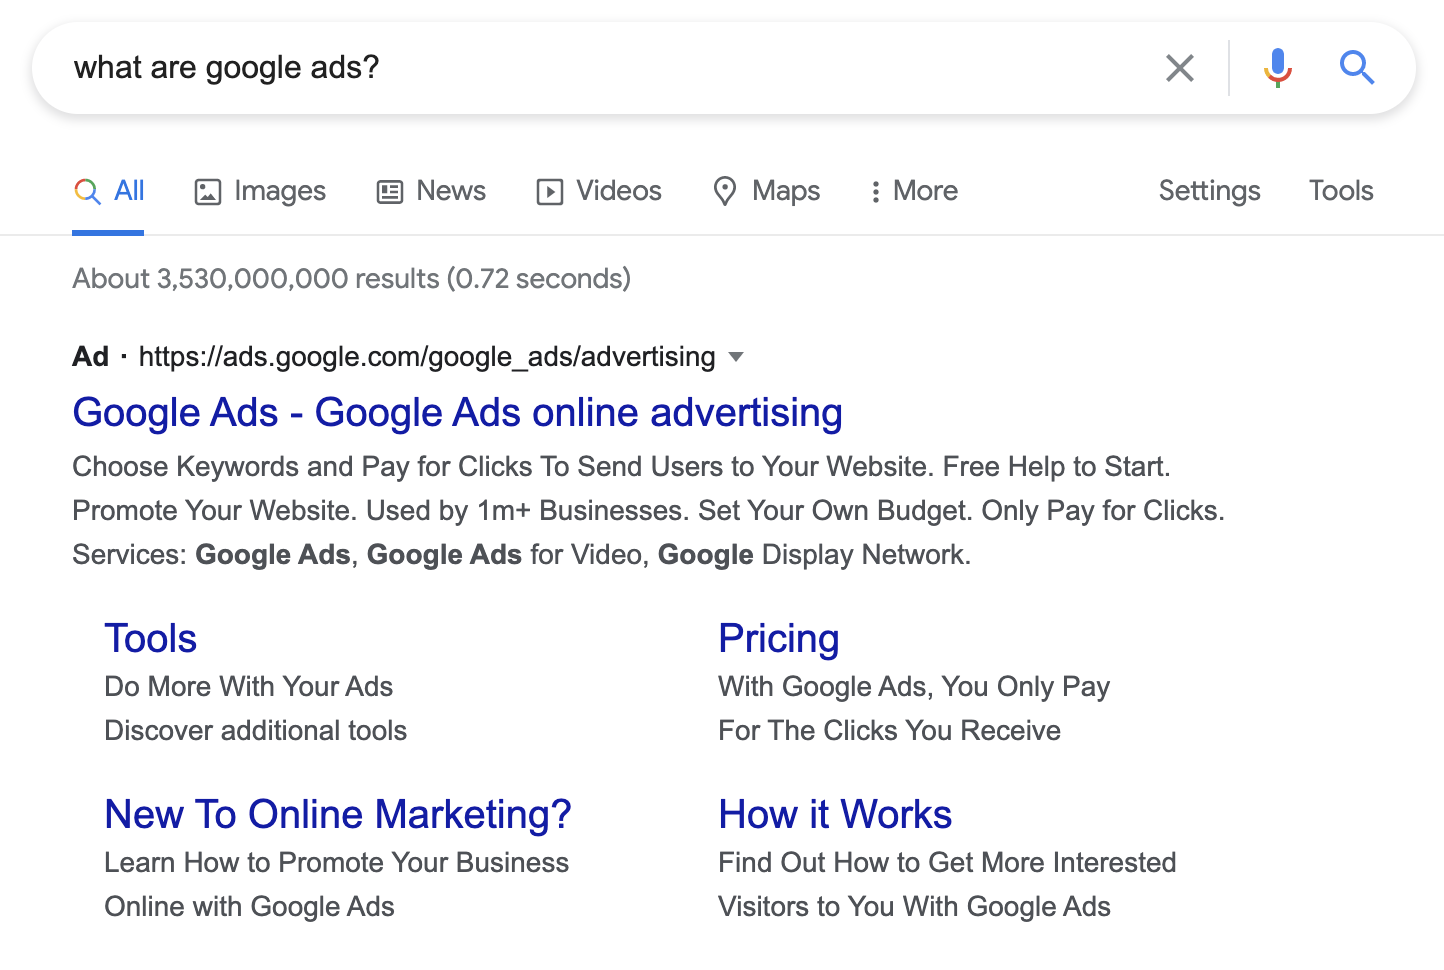 What are Google Ads?